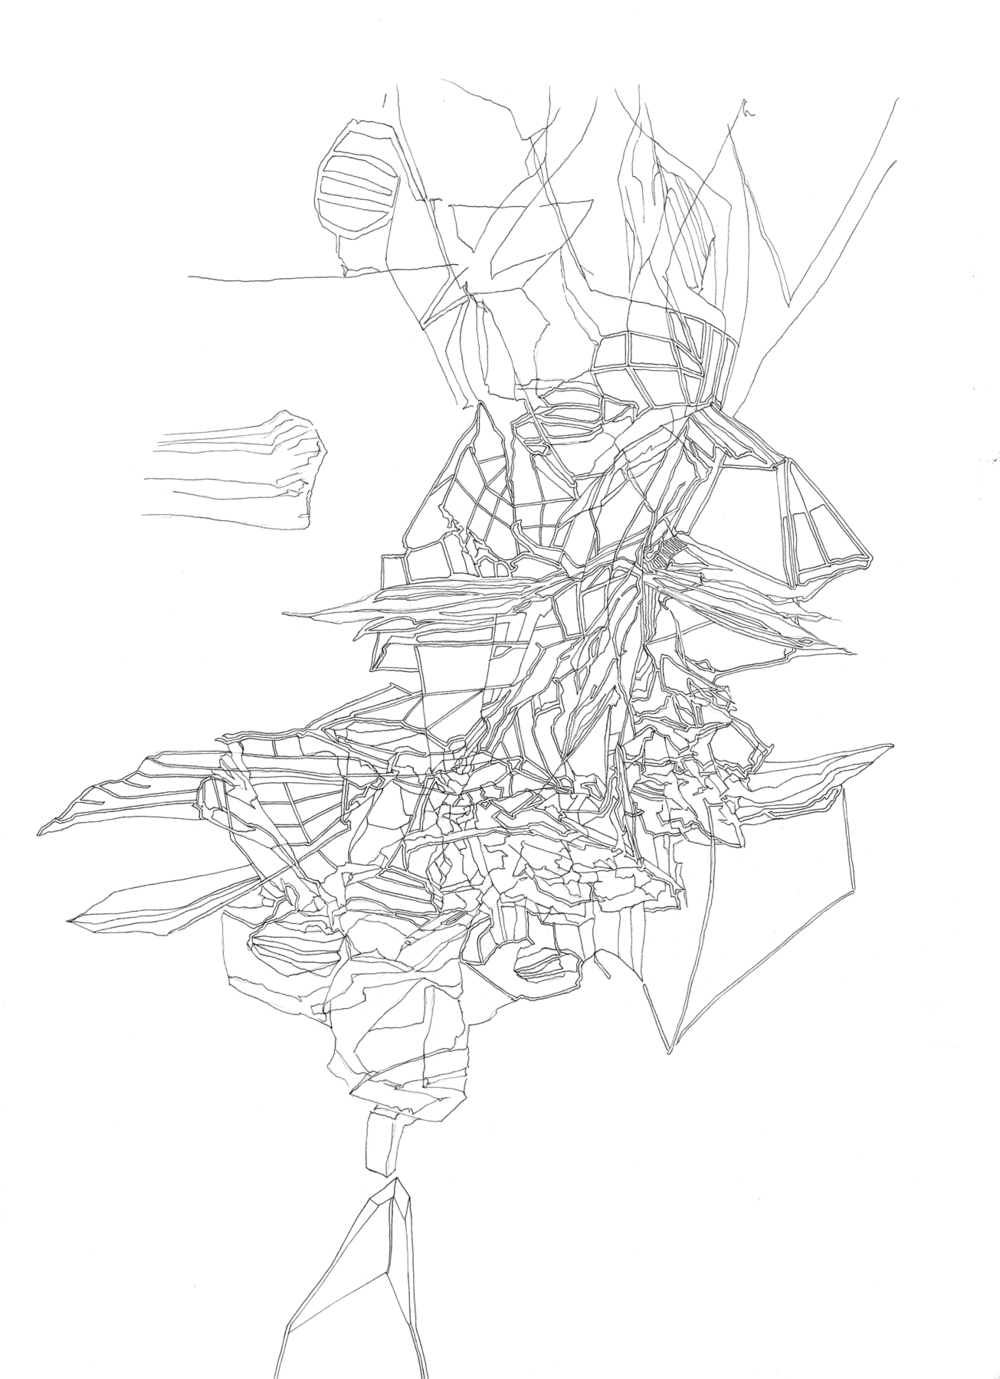 lucidstructure006|1800 copy.png